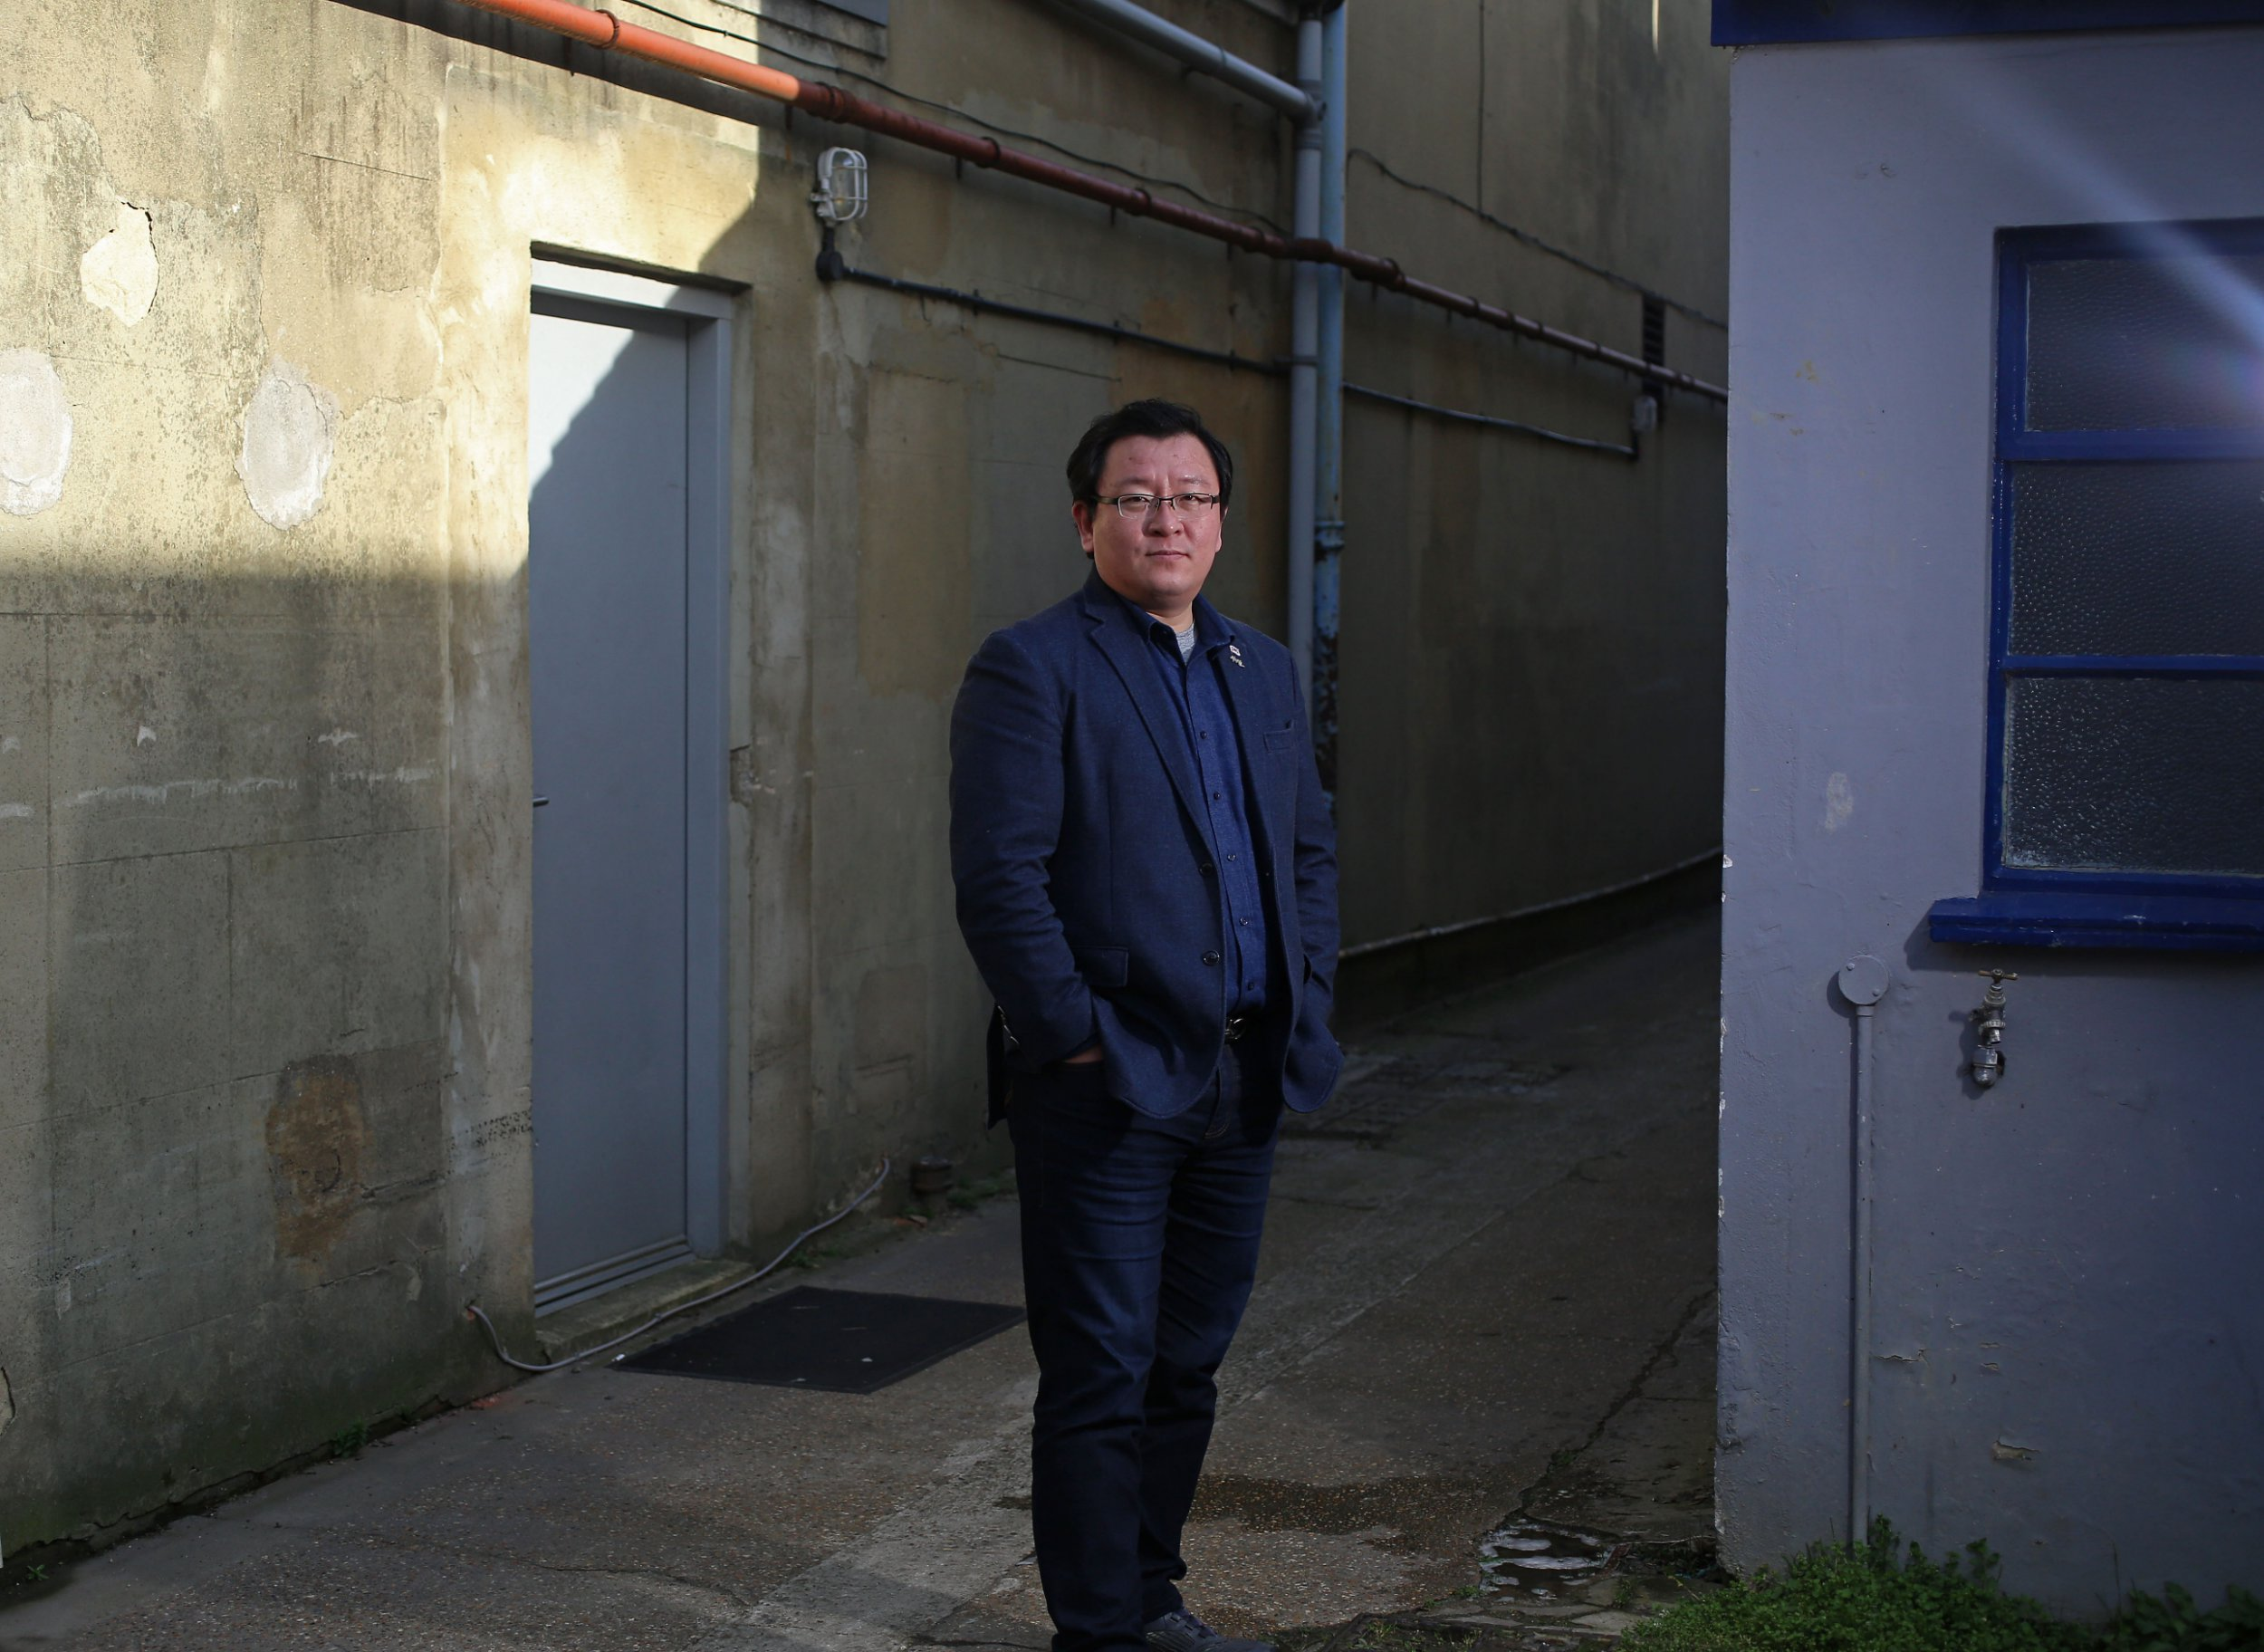 LONDON, UNITED KINGDOM, FEBRUARY 22ND 2019. GIM GYU MIN Gim Gyu Min, a defector from North Korea turned film director, pictured in London, 22nd February 2019. Gim Gyu Min now lives in South Korea with his family and has released his third film, The Gift of Love, which examines North Korean human rights violations. Photo credit: Susannah Ireland